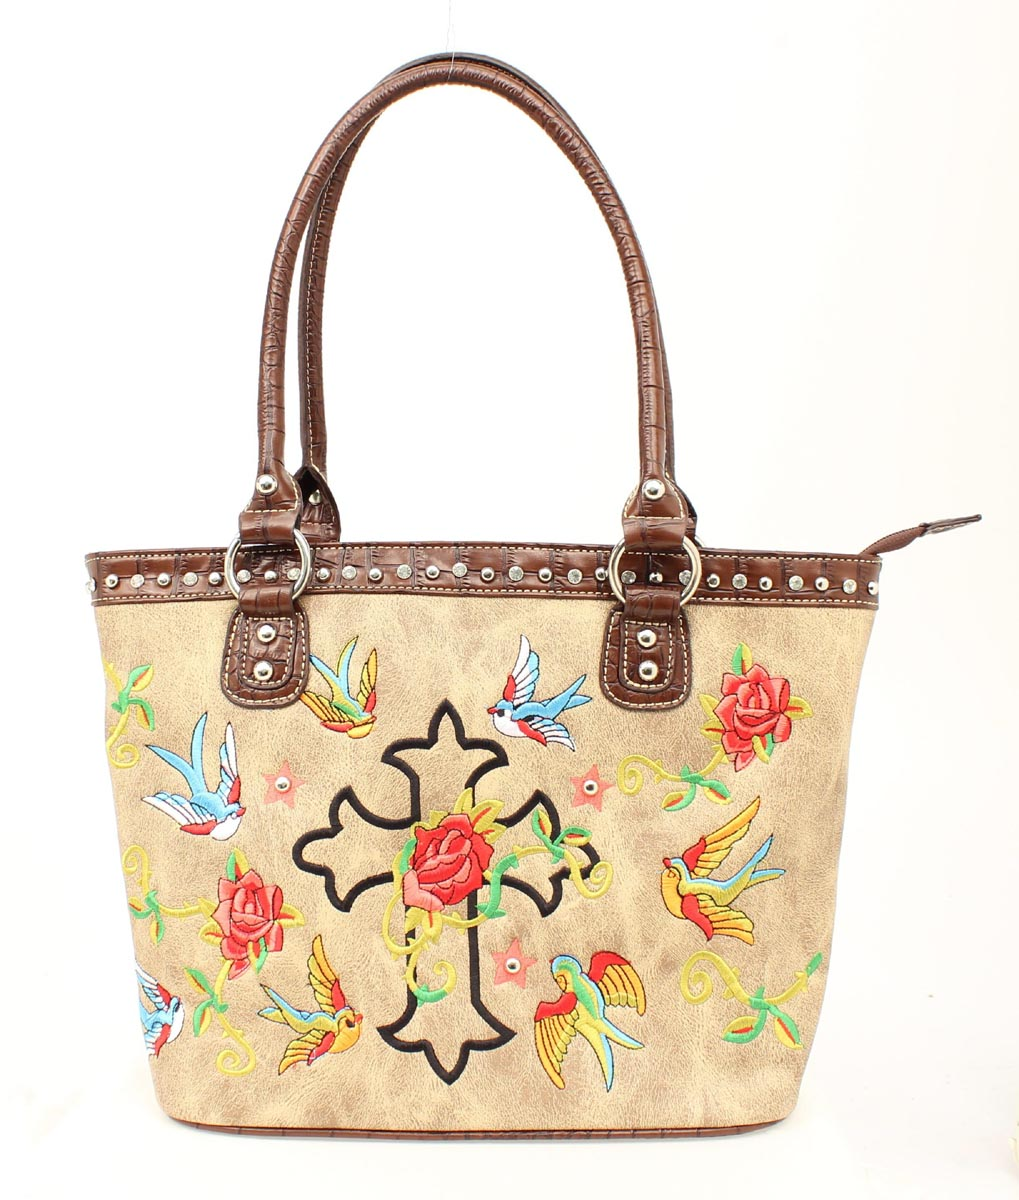 Blazin Roxx Cross and Roses Handbag Tote